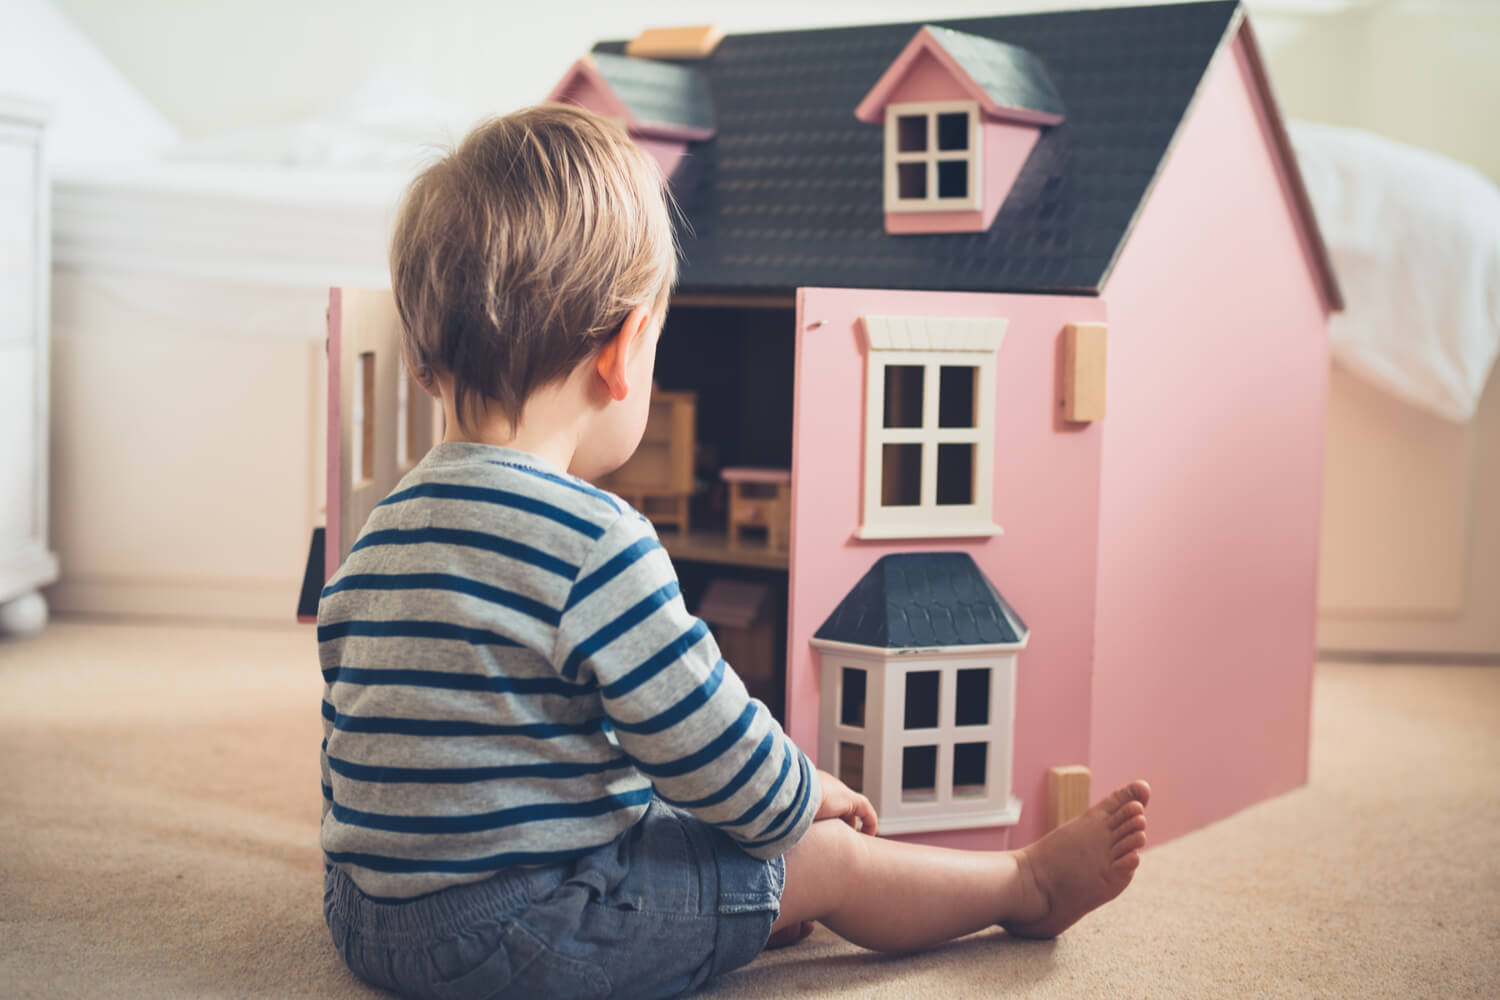 boy playing with a pink doll house